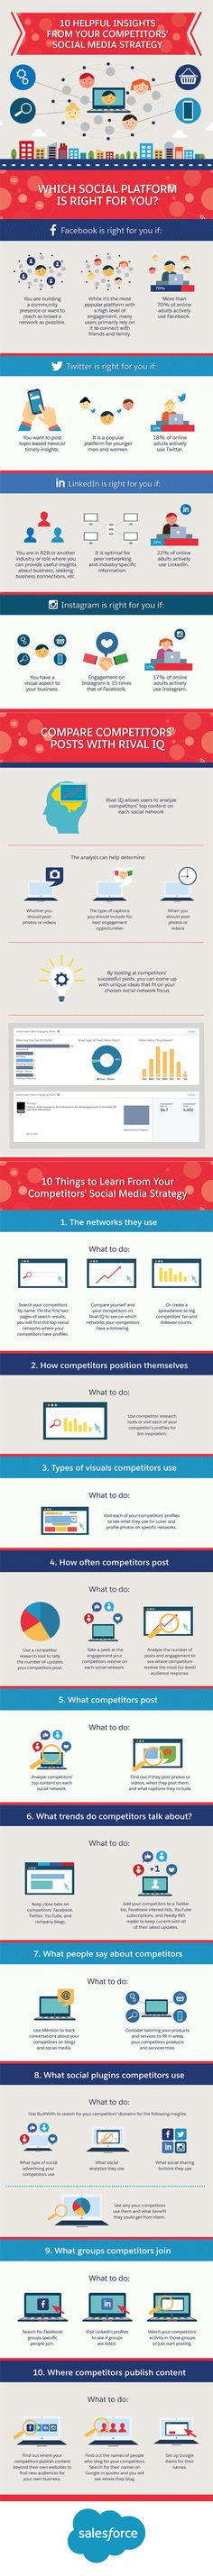 10 Ways to Steal Ideas From Your Competitors' Social Media Strategy #Infographic